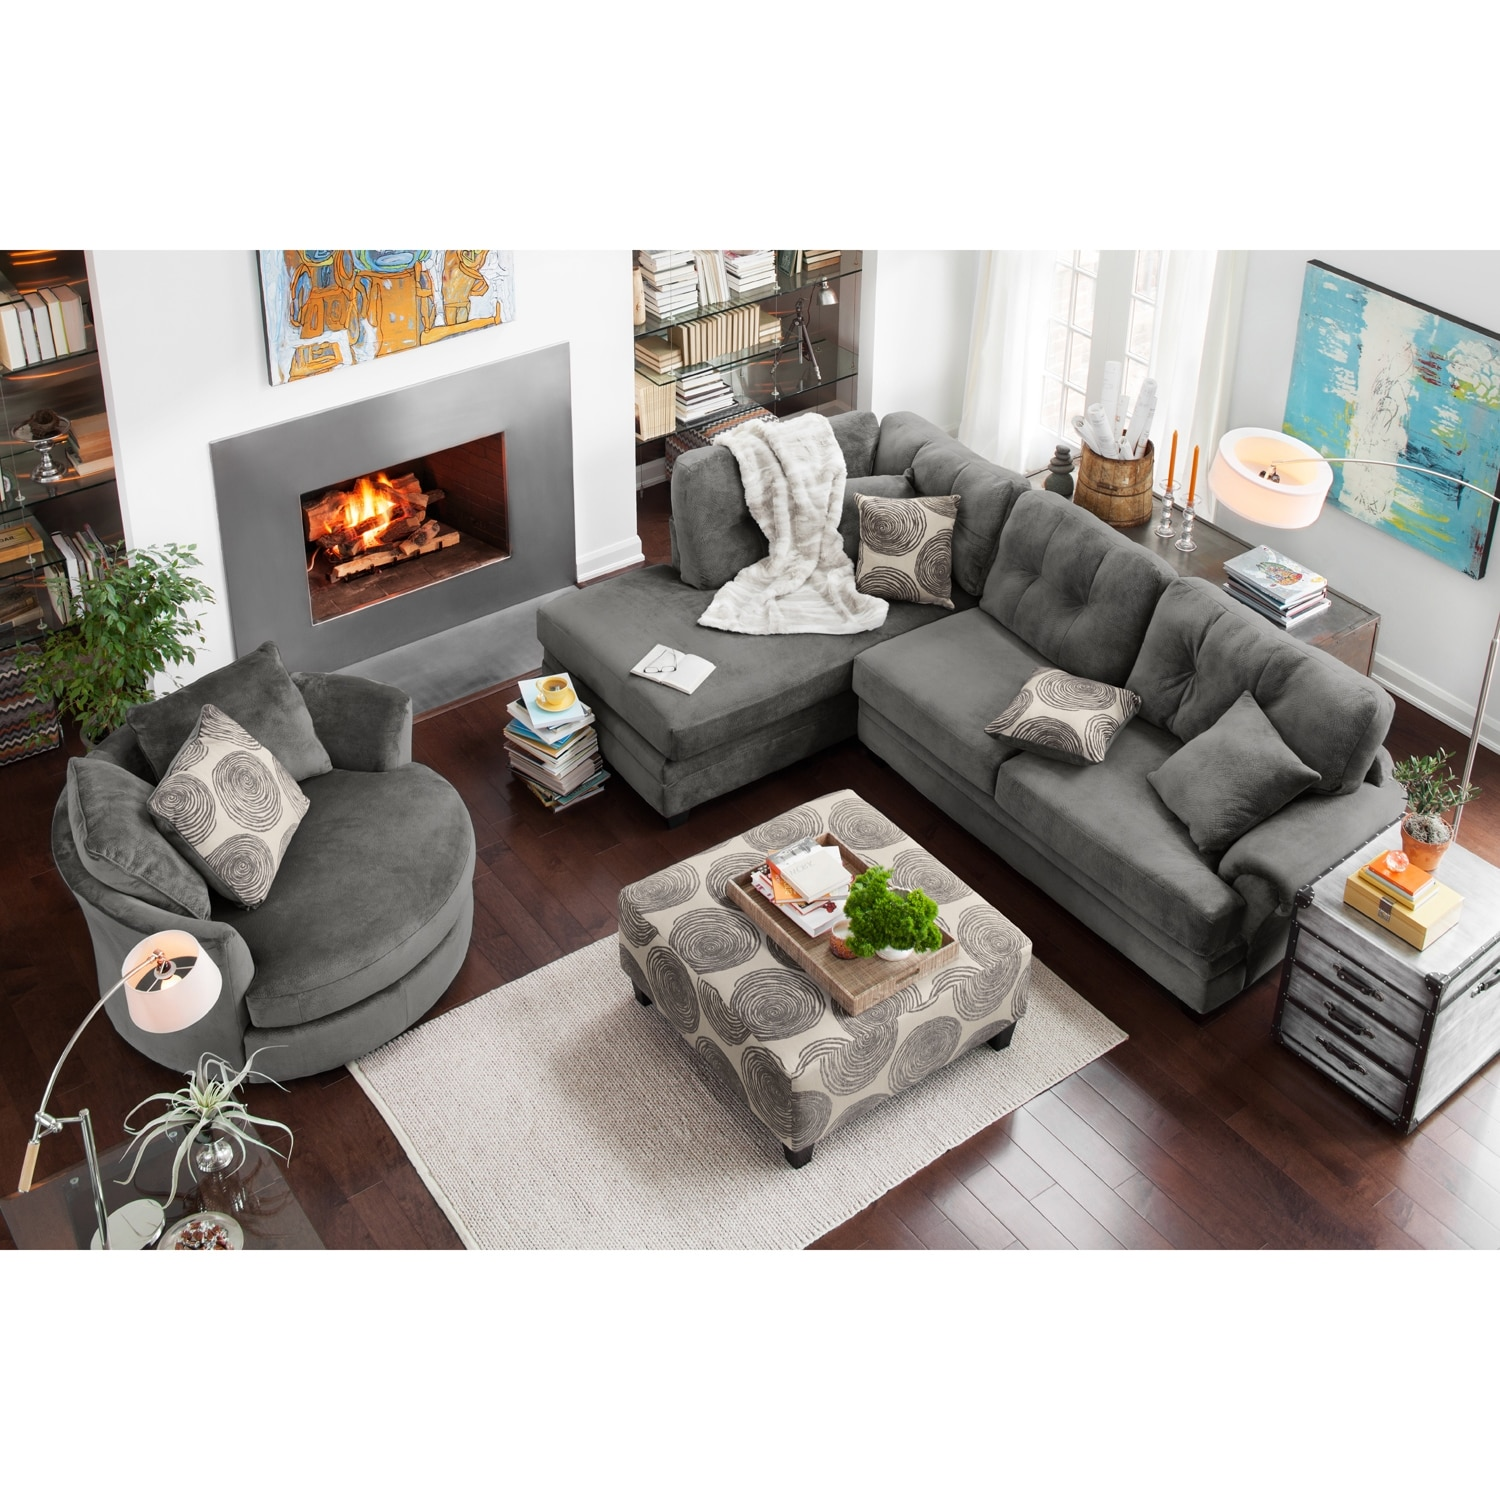 Cordelle 2 piece left facing chaise sectional gray for Living room ideas 2 couches